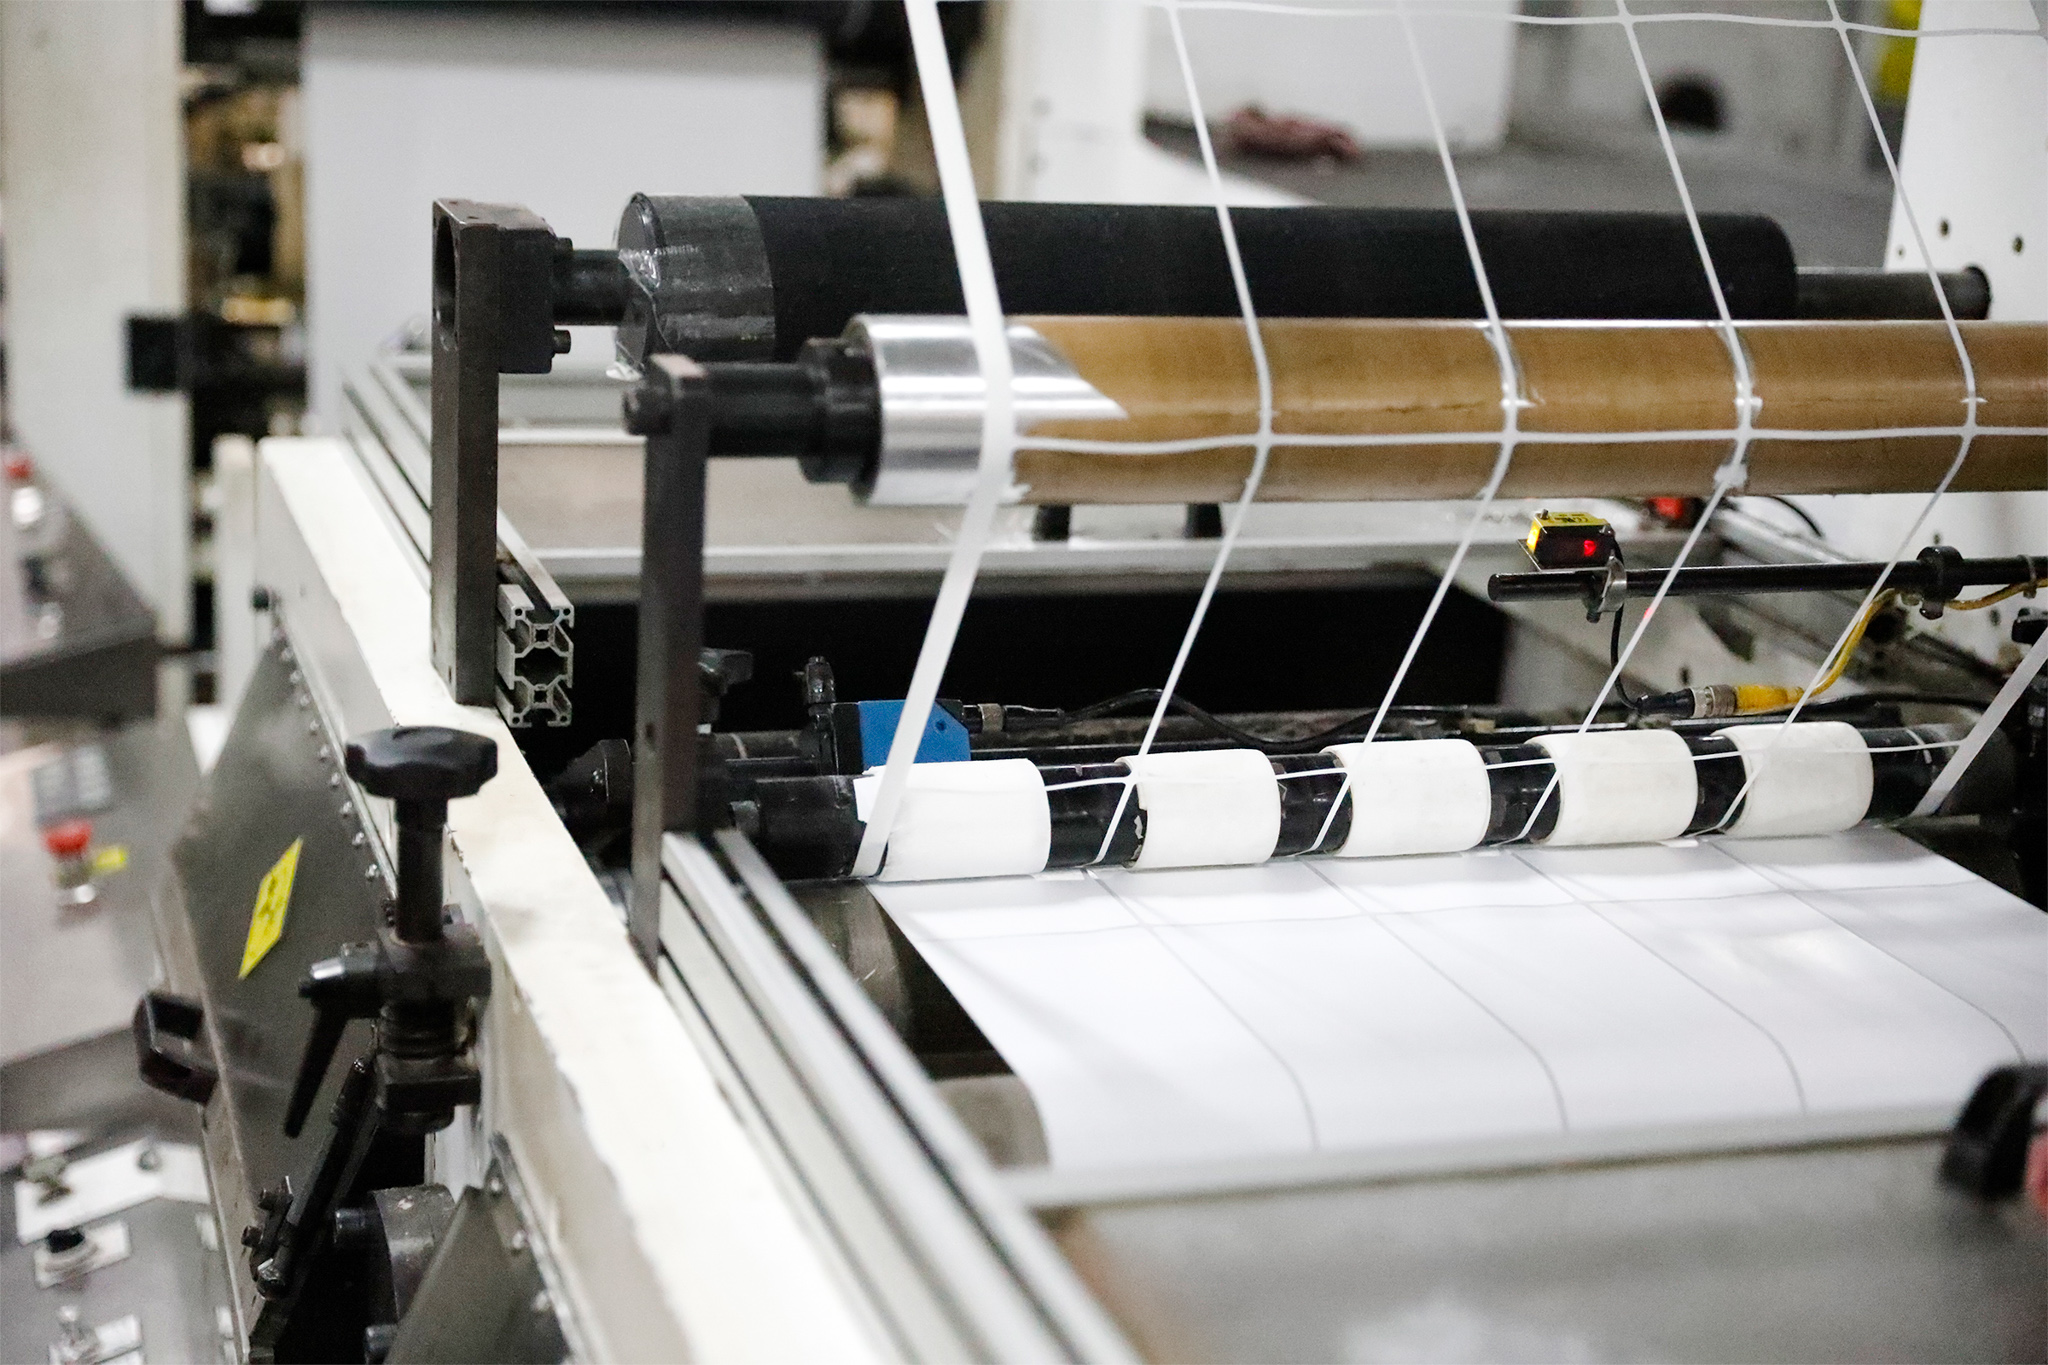 A die cutter cuts shapes into labels as they move down the production line